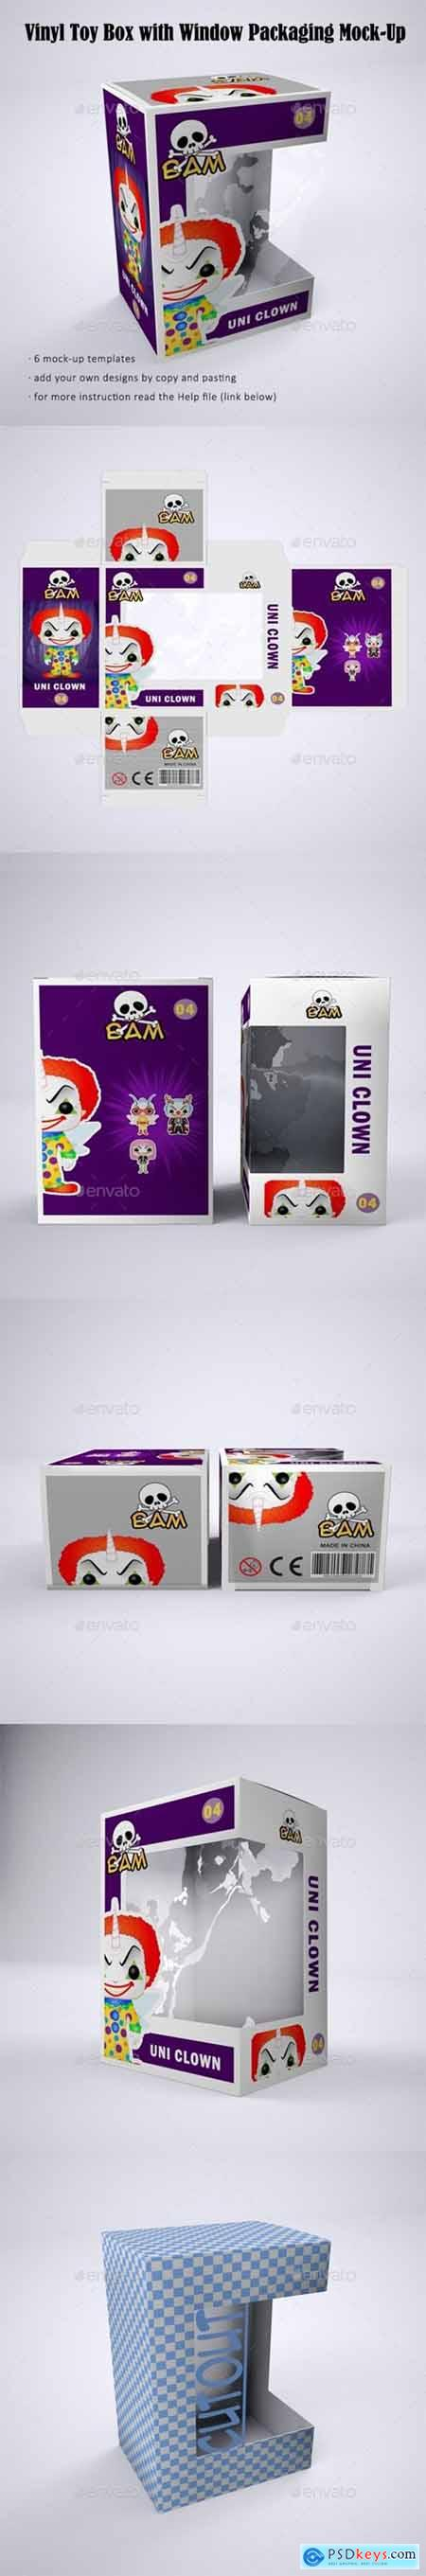 Vinyl Toy Box with Die Cut Window Packaging Mock-Up 22379769